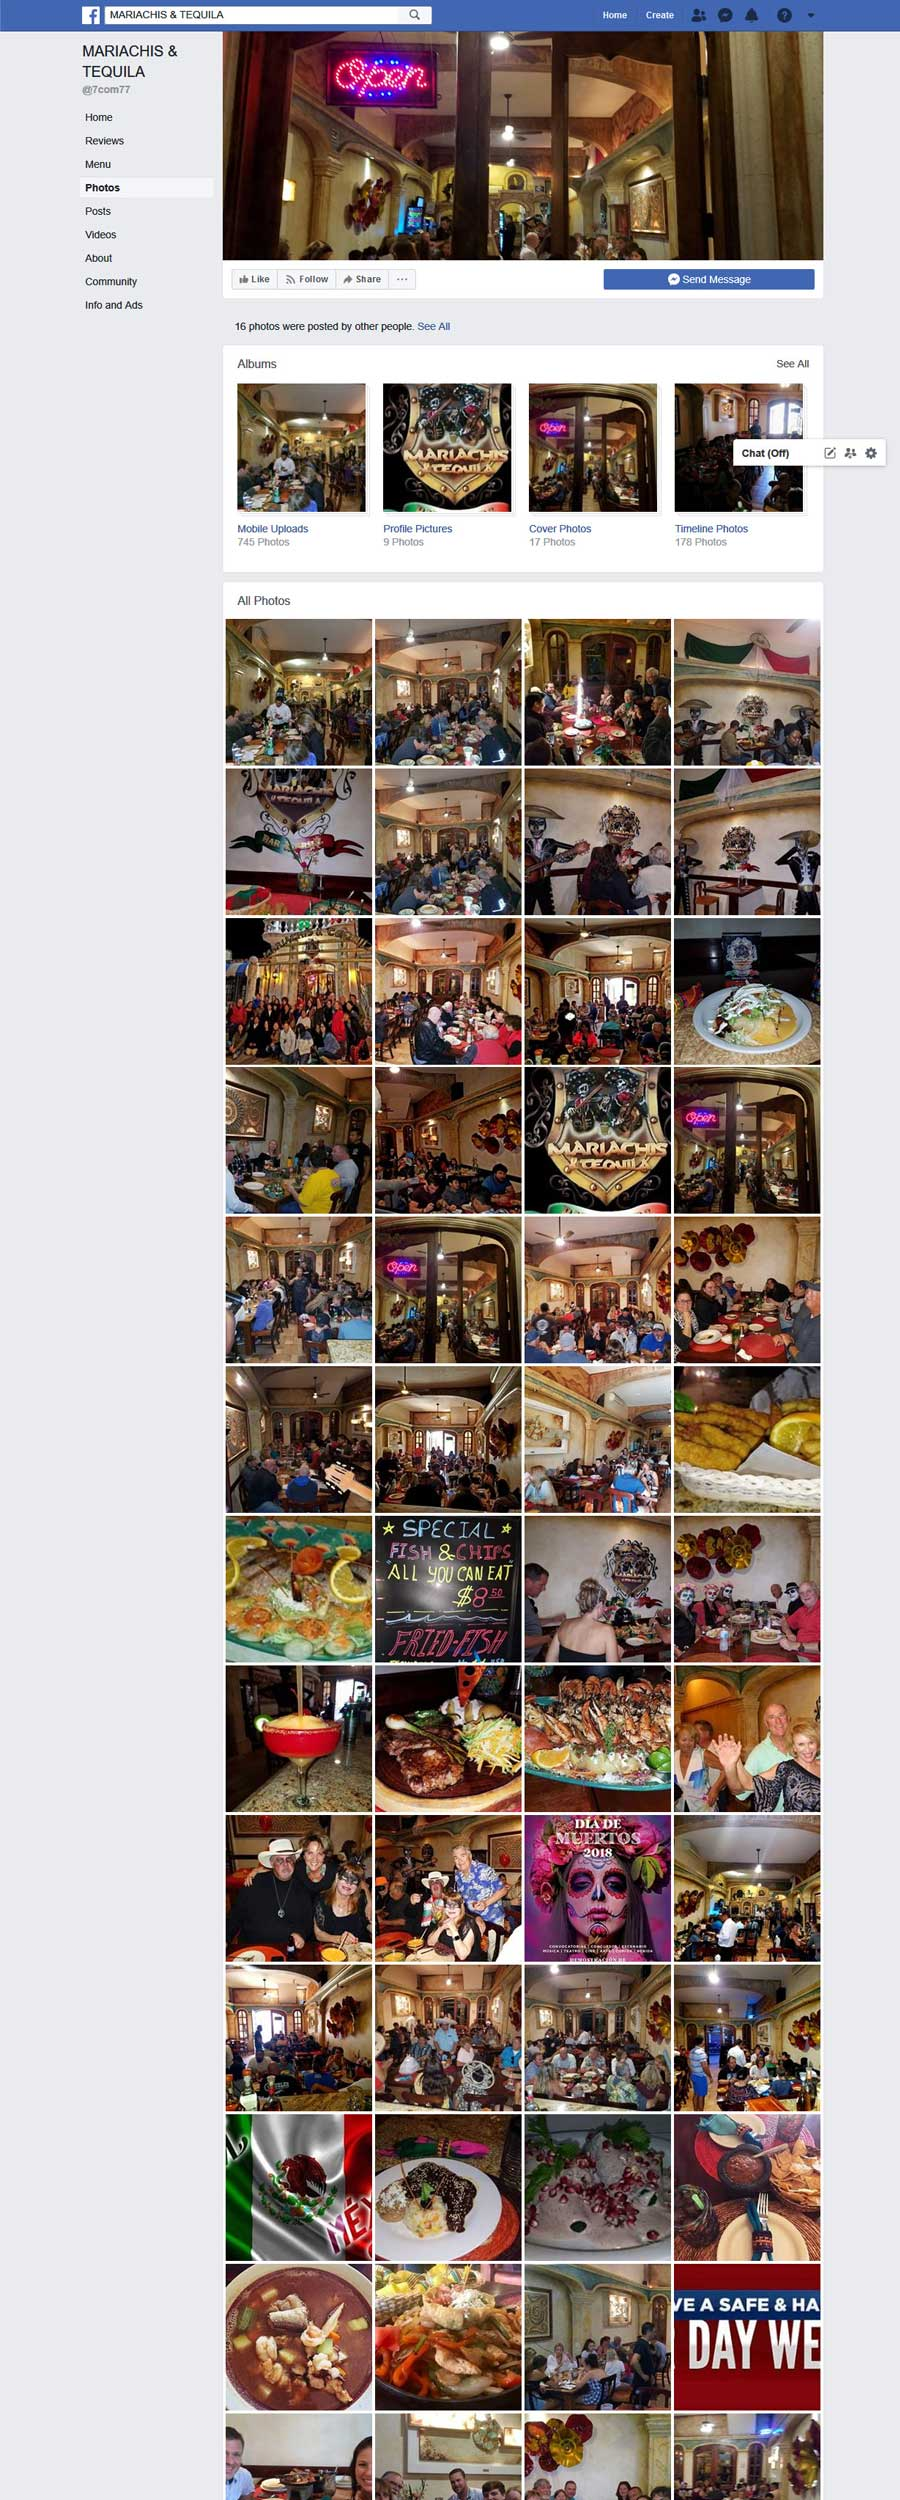 Mariachis and Tequila Bar and Restaurant in Rocky Point Mexico (Puerto Penasco). Click the Picture to Visit Mariachis and Tequila Bar and Restaurant Facebook Page Site!